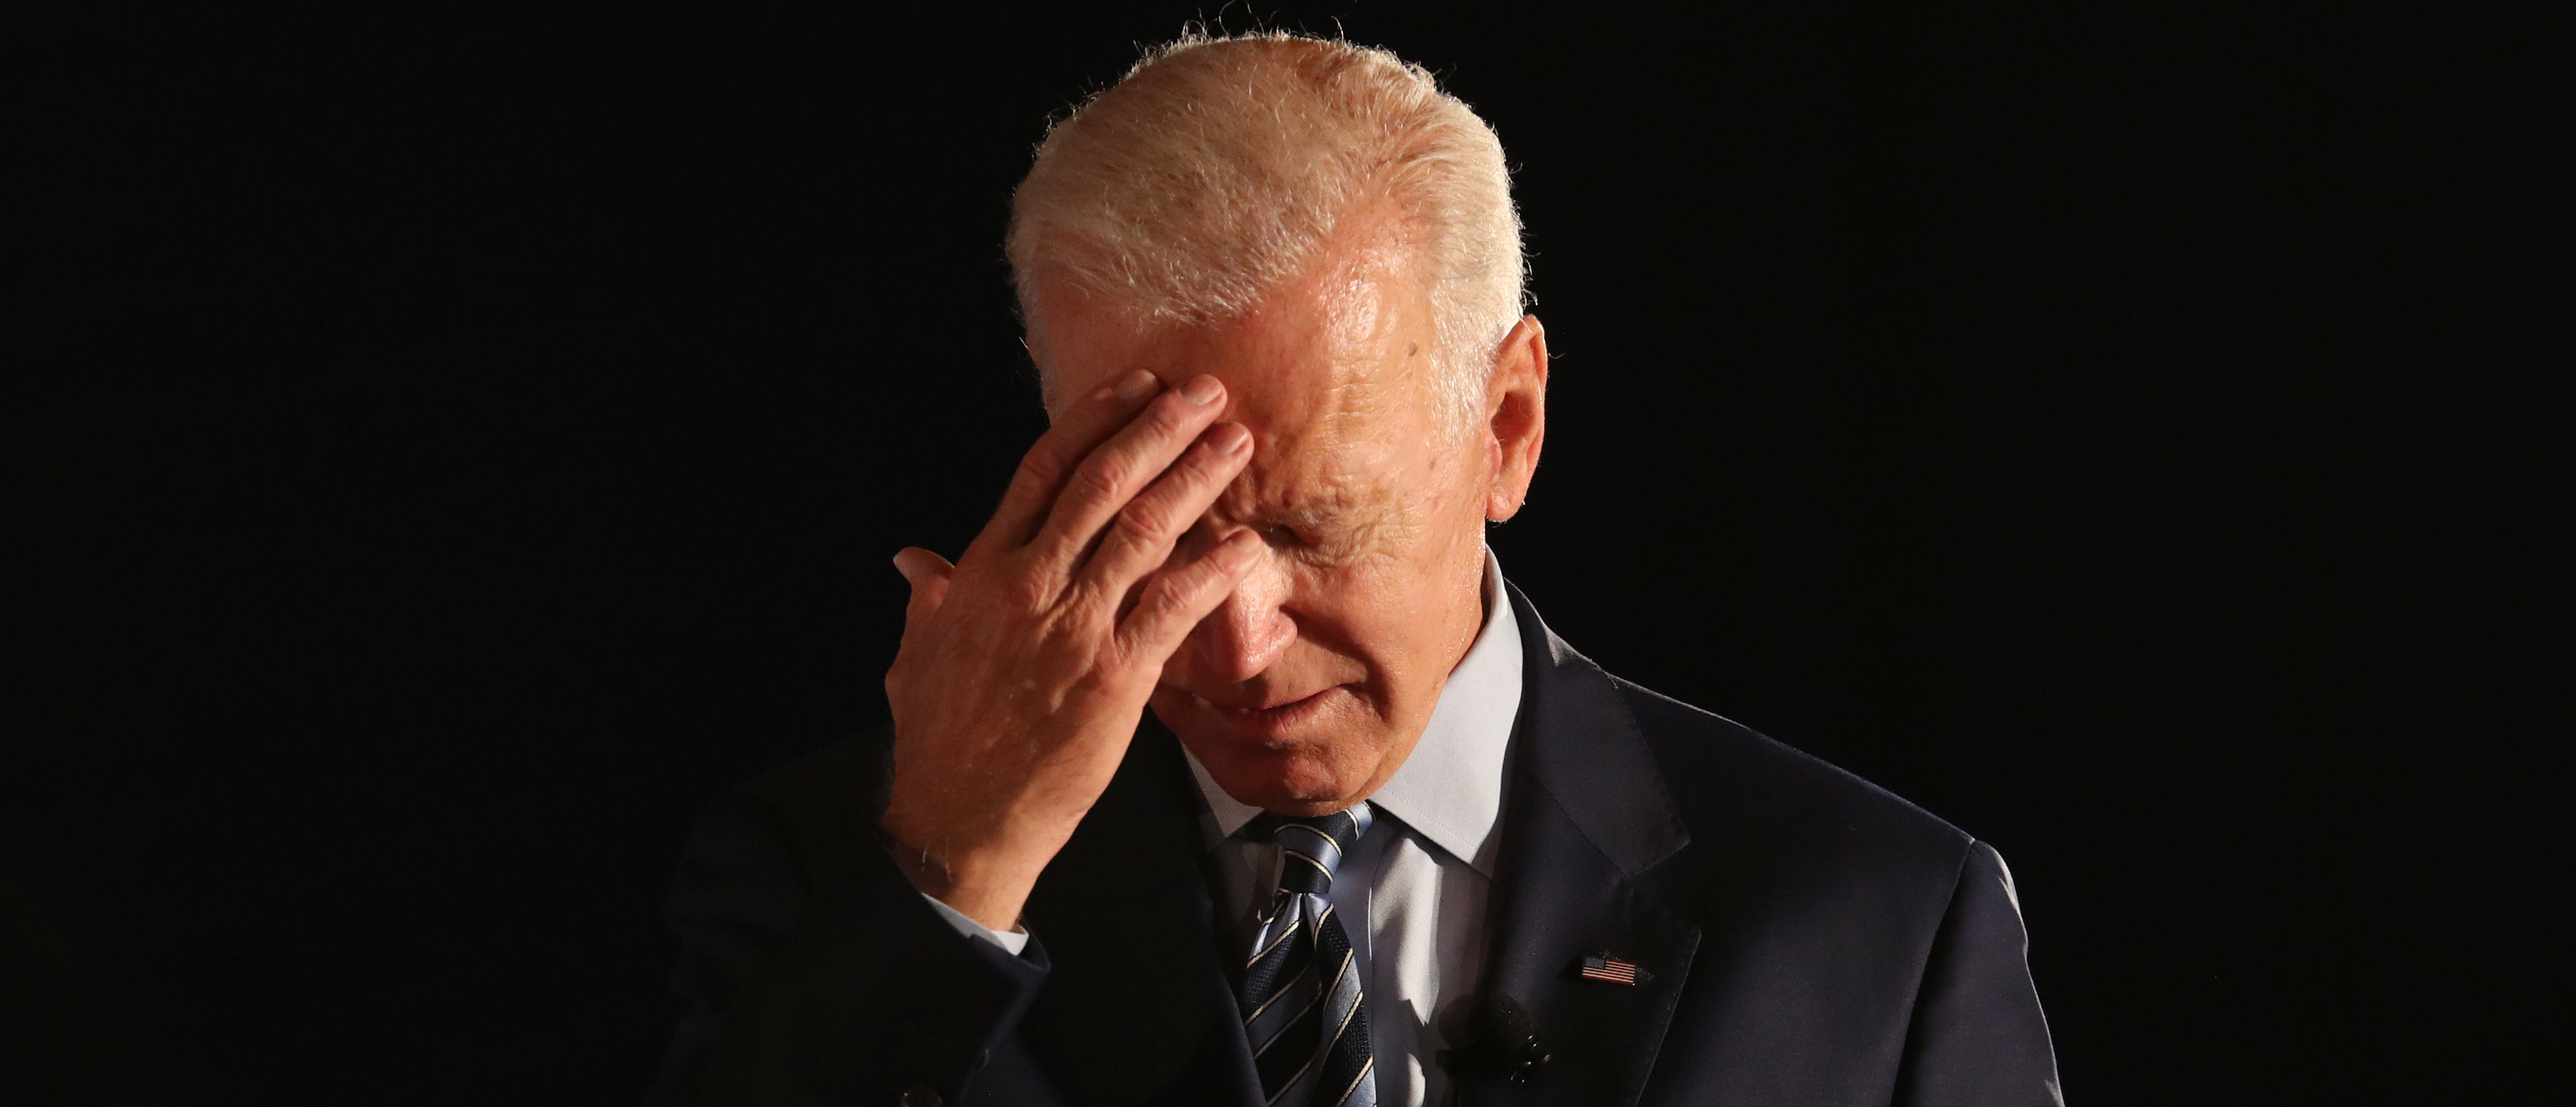 All The Times Joe Biden's Basement Interviews Required 'Clarification' — Or A Full-On Apology